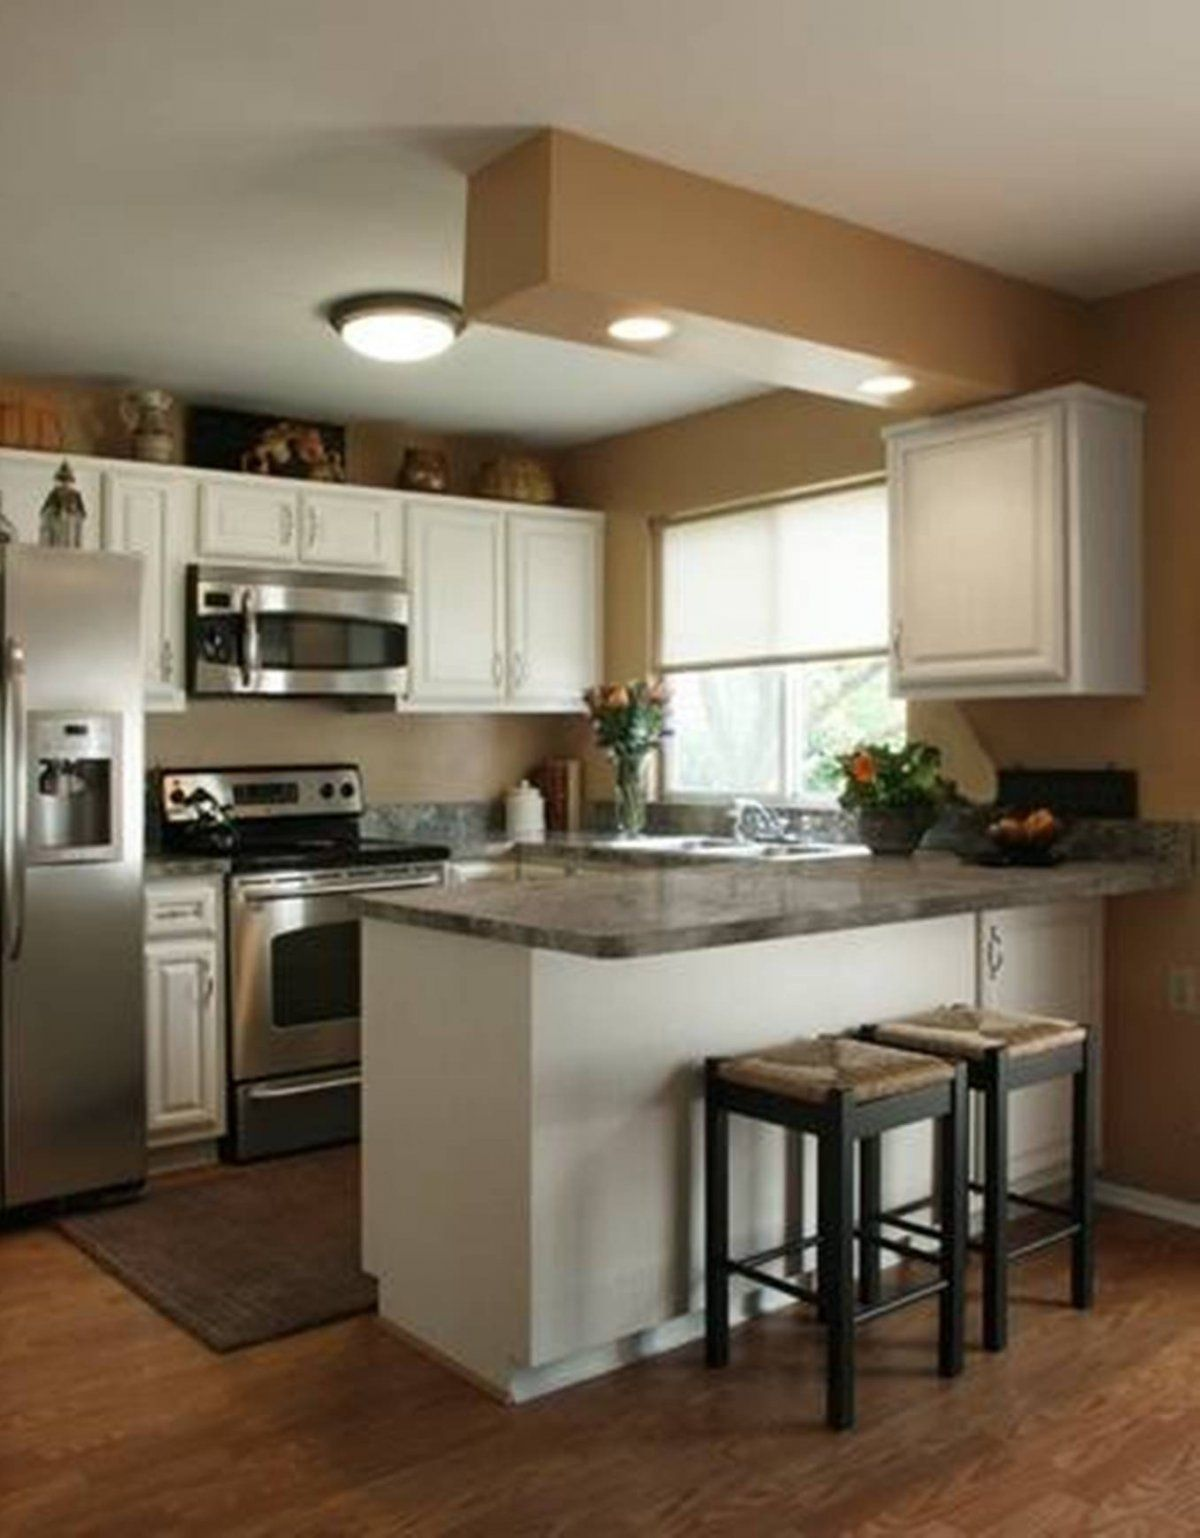 interior decorating top kitchen cabinets modern. Modern Small Kitchen Design Ideas For Remodeling - | Stupic.com Interior Decorating Top Cabinets O